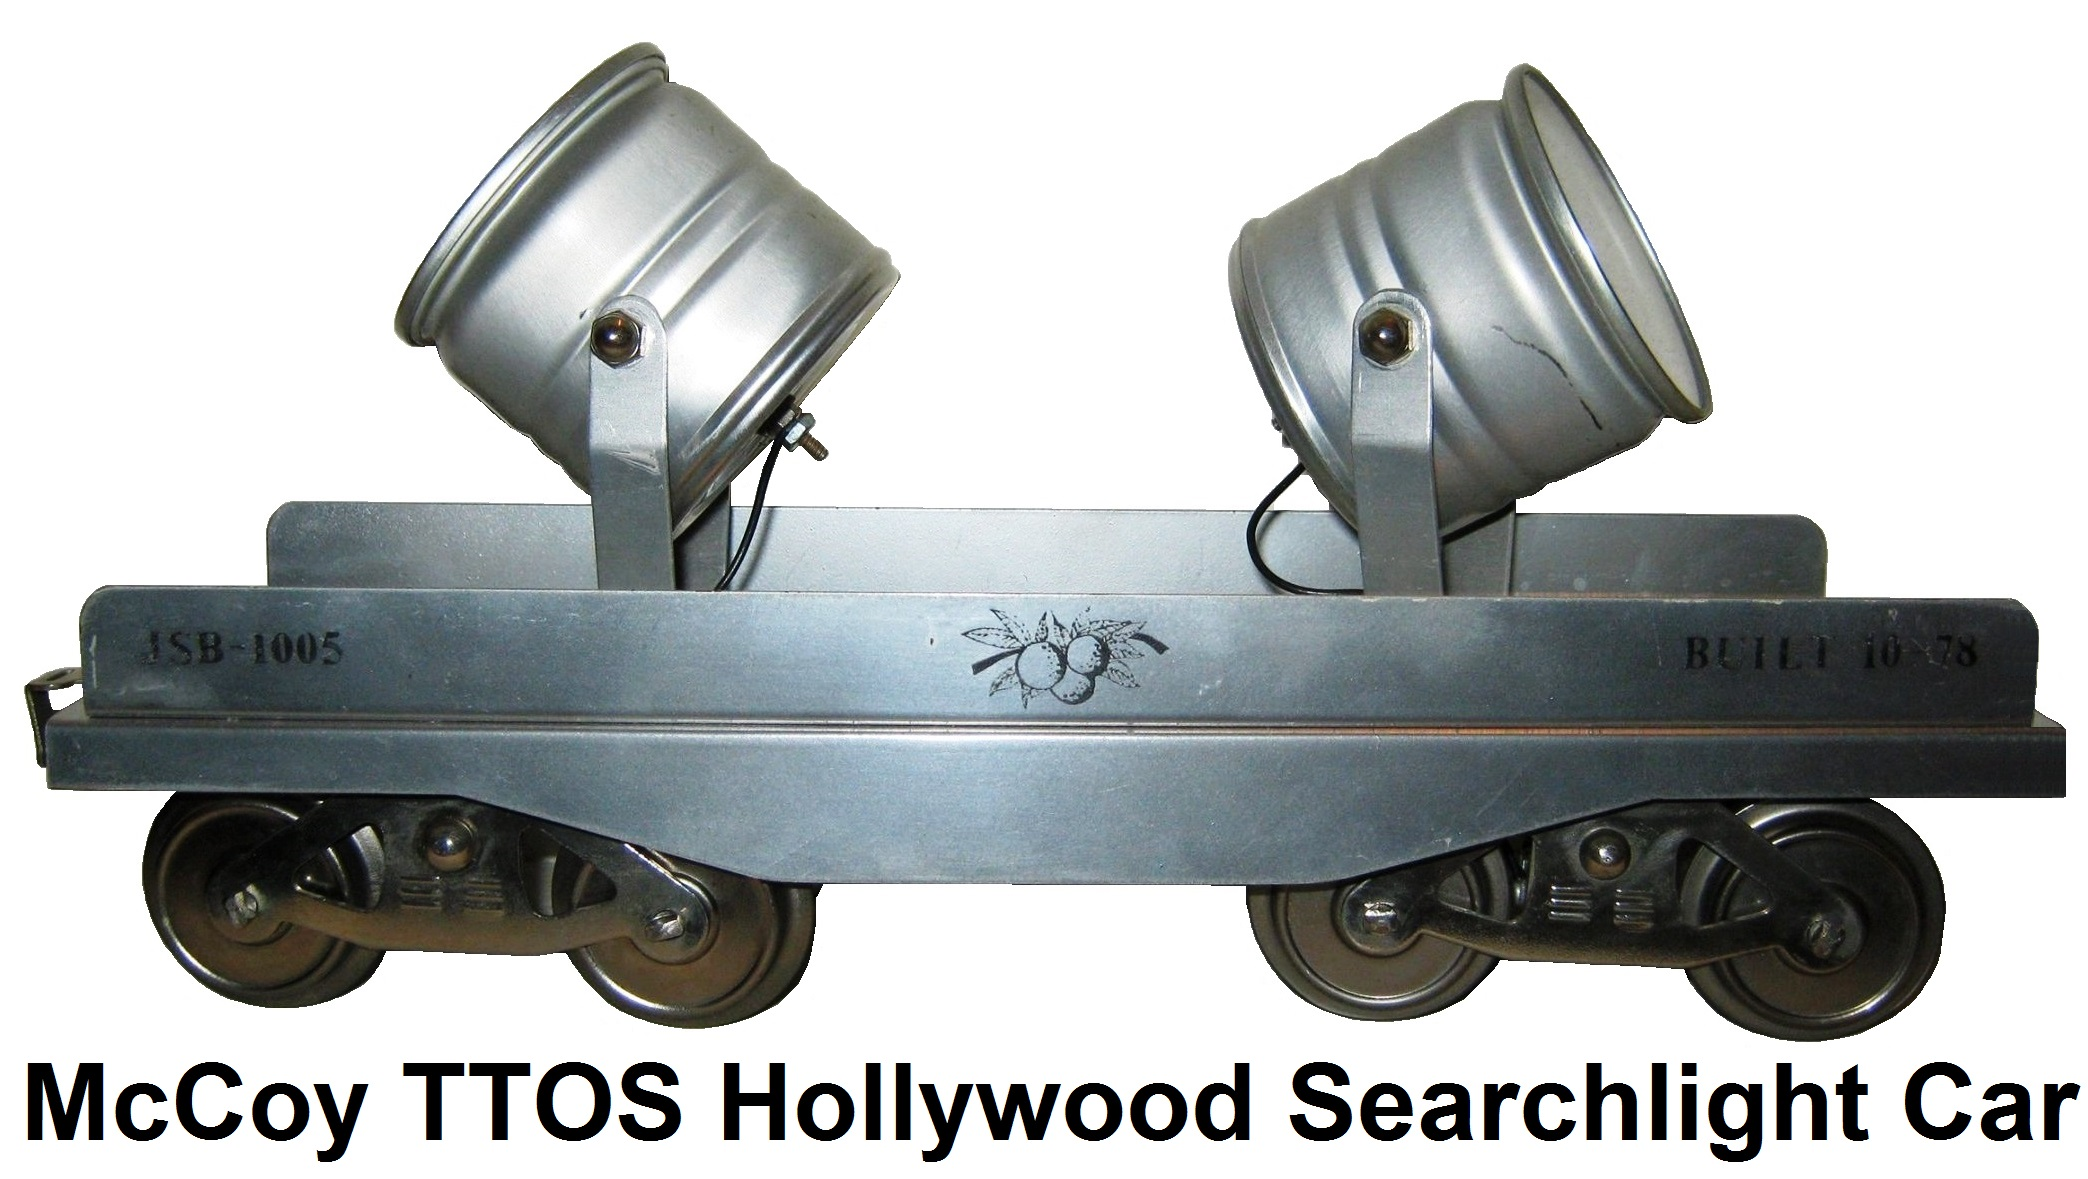 McCoy Standard gauge TTOS 1978 Hollywood searchlight car #JSB-1005 all silver, only 6 produced